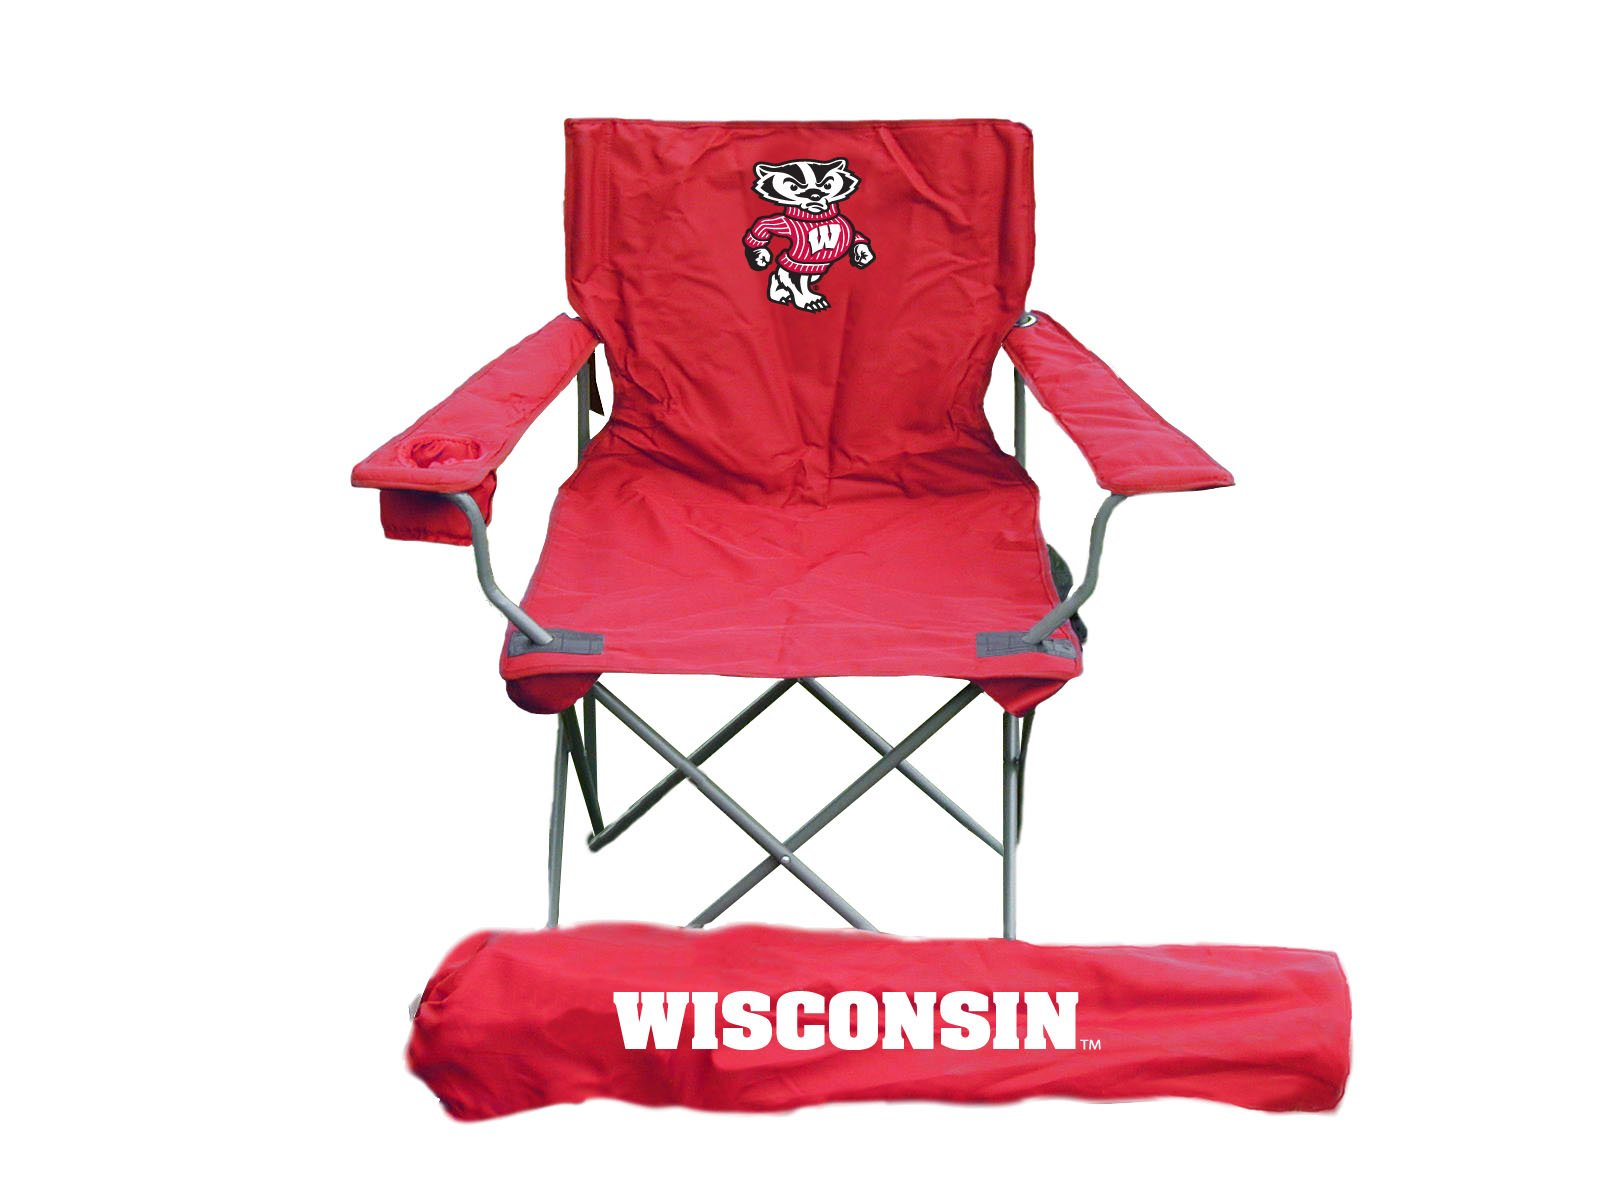 Rivalry NCAA Wisconsin Badgers Folding Chair With Bag